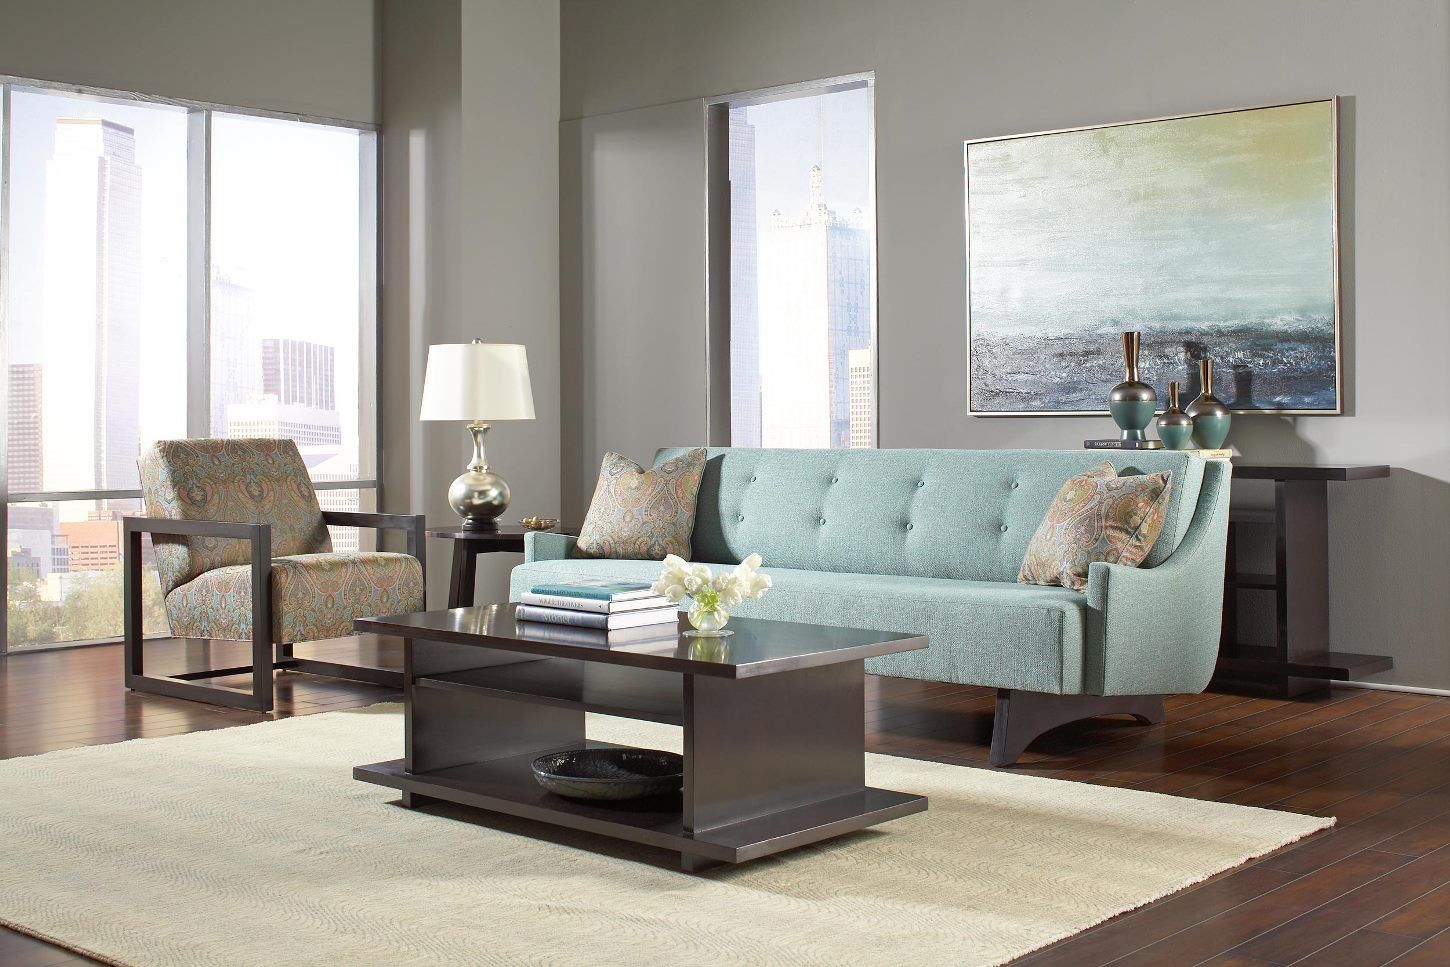 Nice Stickley High Line Sofa | Visit Our Sarasota Or Pinellas Park Locations In  Florida For The